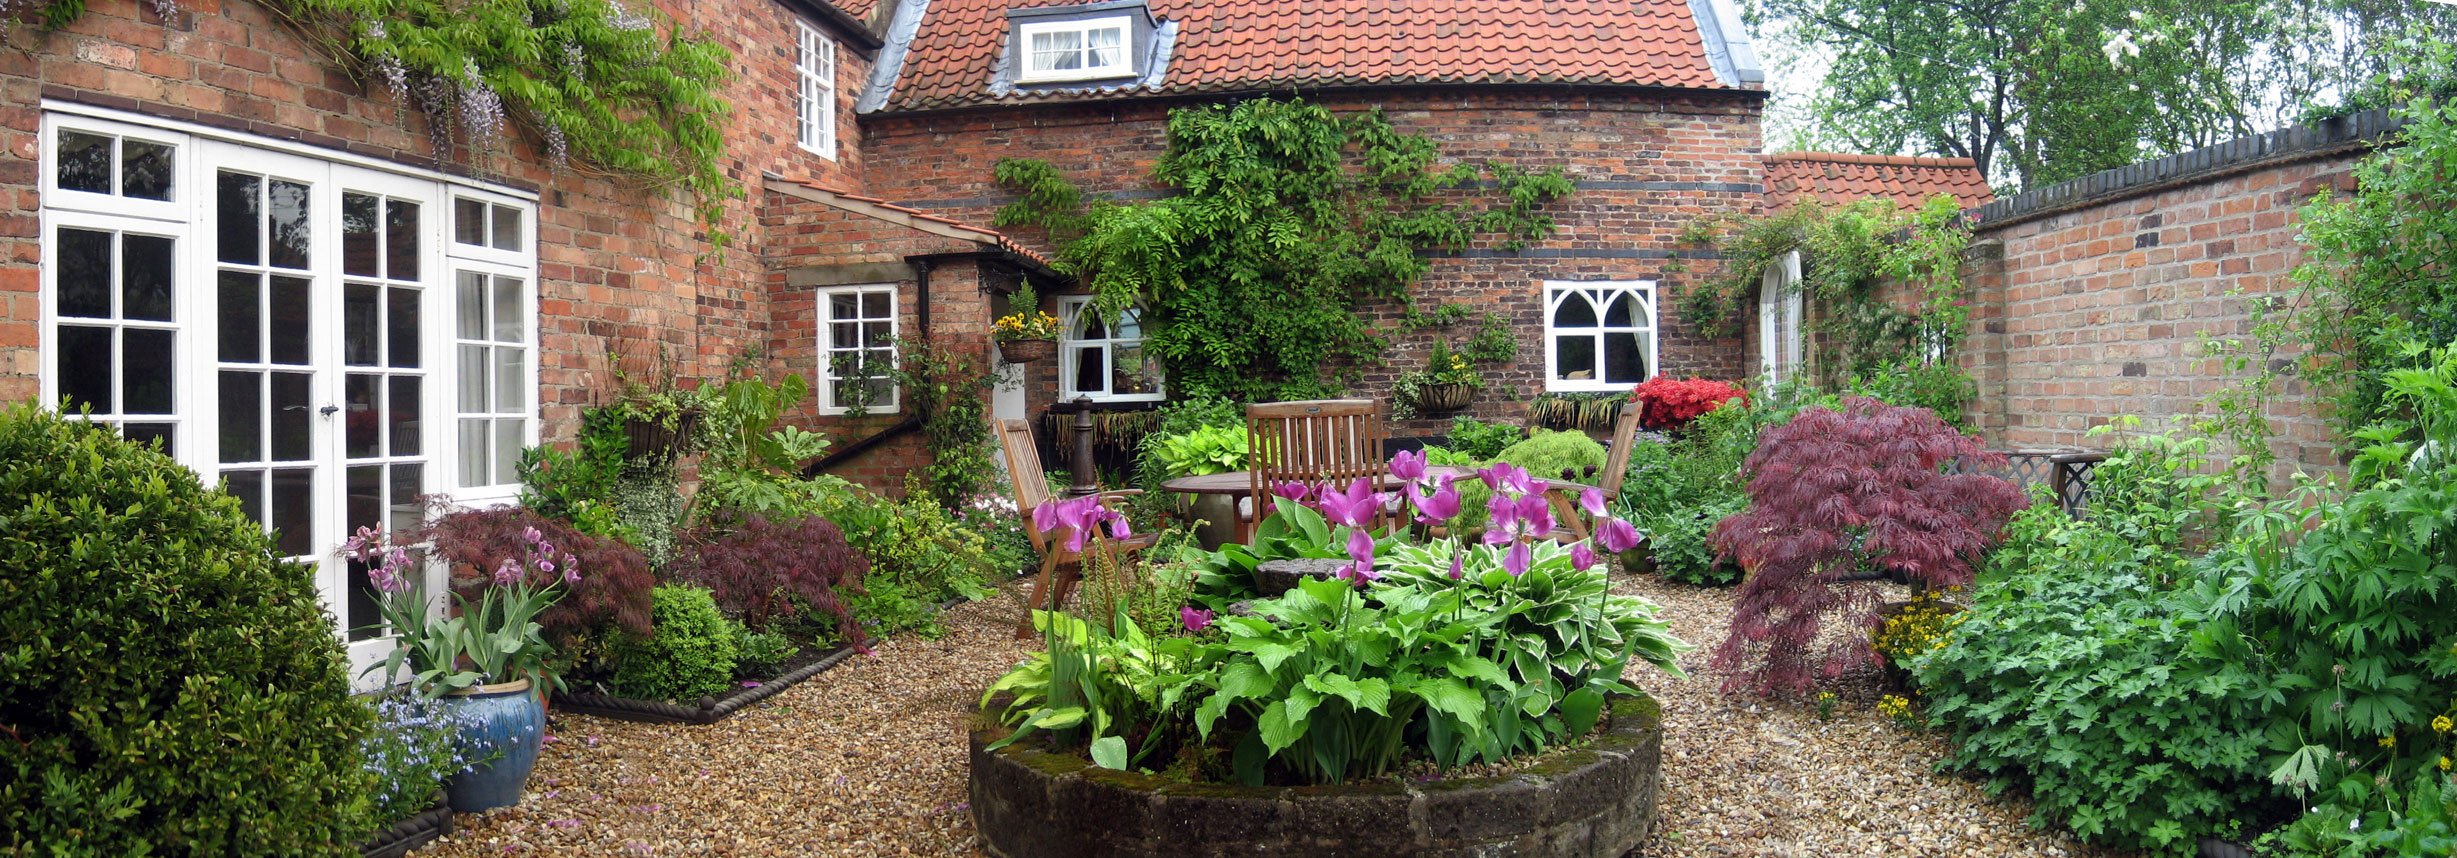 Traditional courtyard garden design style and planting ... on Courtyard Patio Ideas id=20635